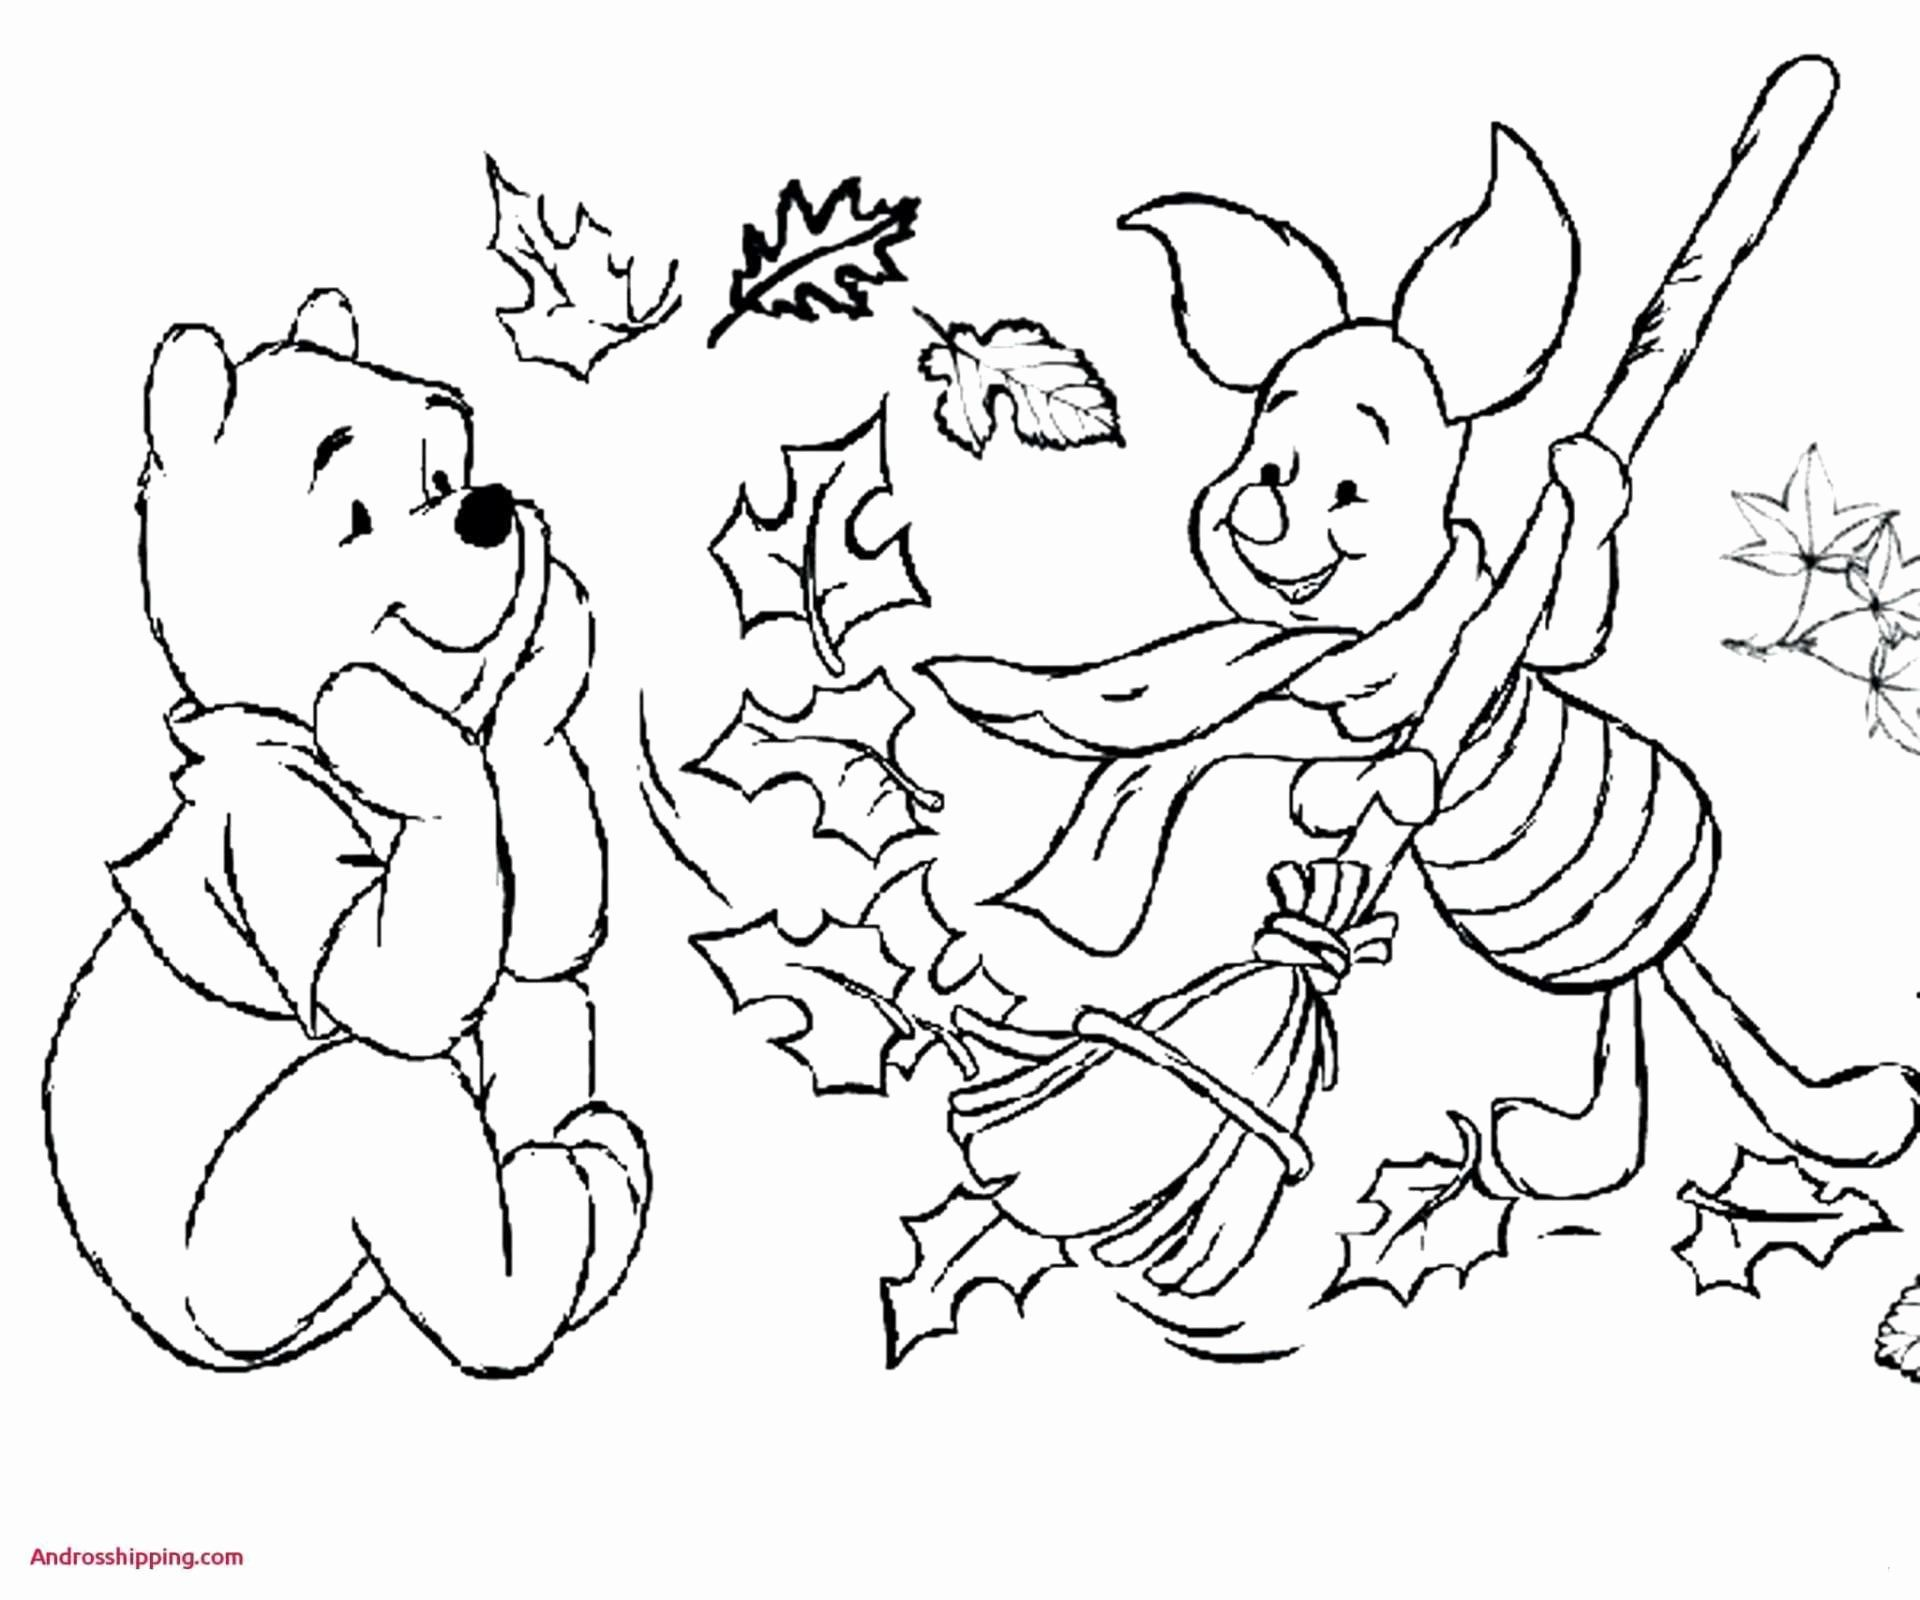 Animal Rescue Coloring Book Awesome Coloring Pages Paw Patrol Printable Coloring Pages Fall Coloring Pages Animal Coloring Pages Disney Coloring Pages